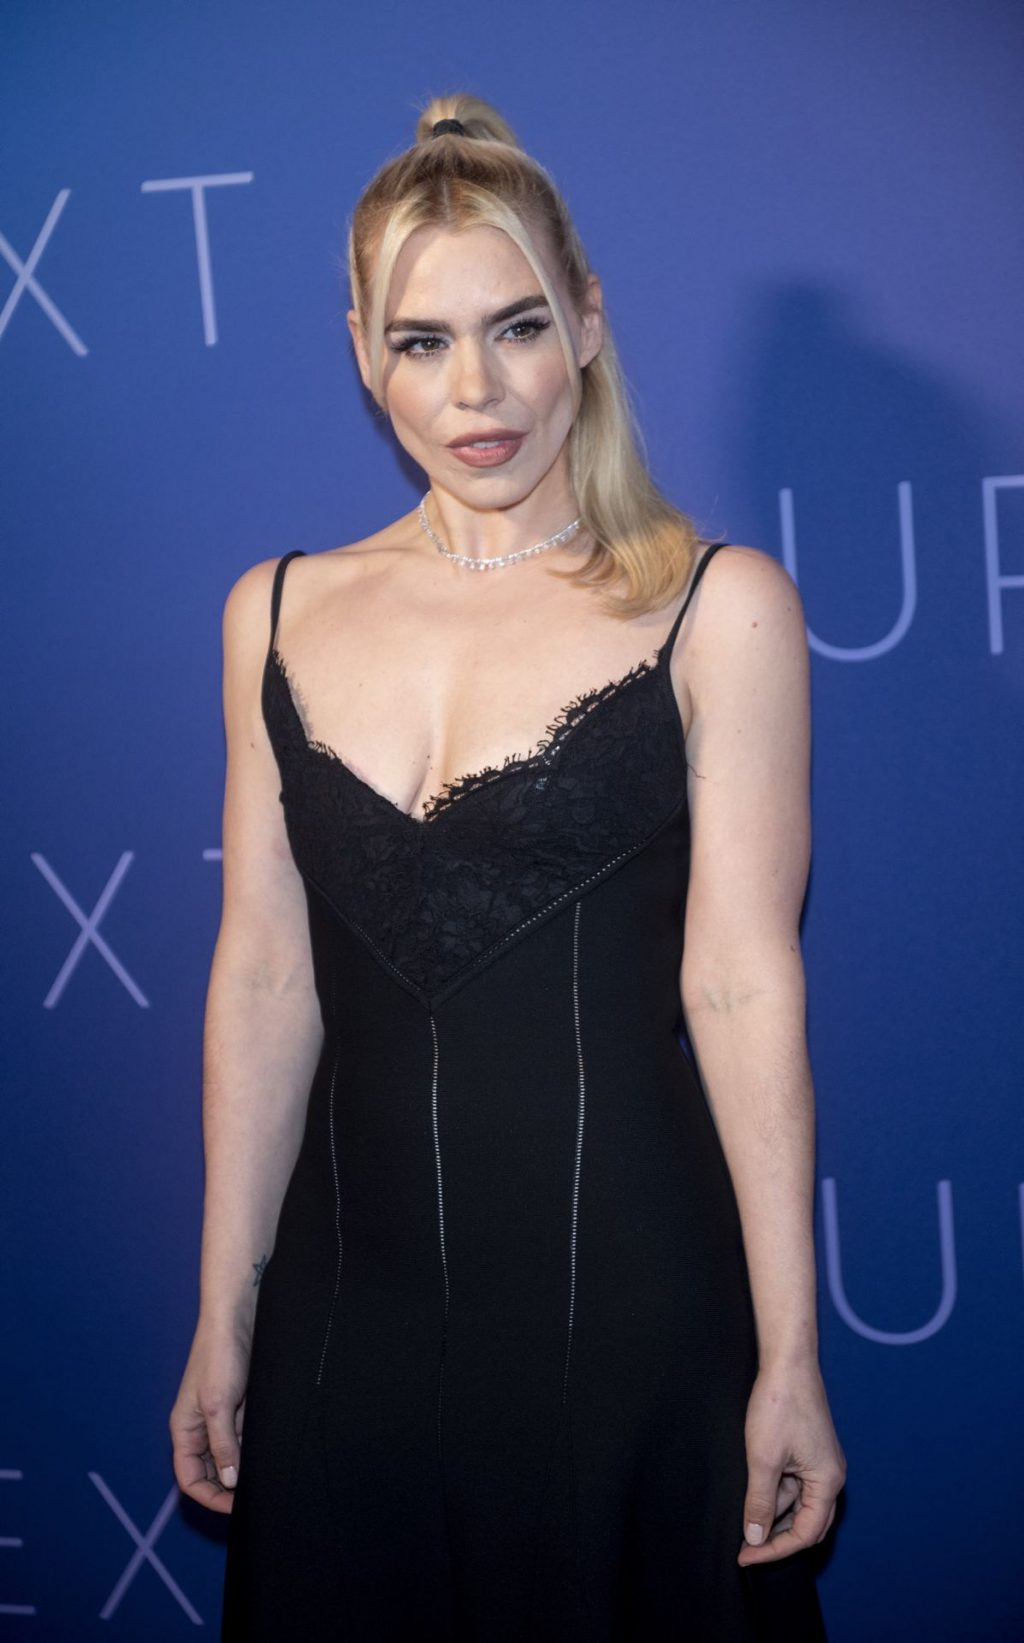 Billie Piper Sexy The Fappening Blog 50 1024x1643 - Billie Piper Smiles at the Sky Up Next Event (67 Photos)